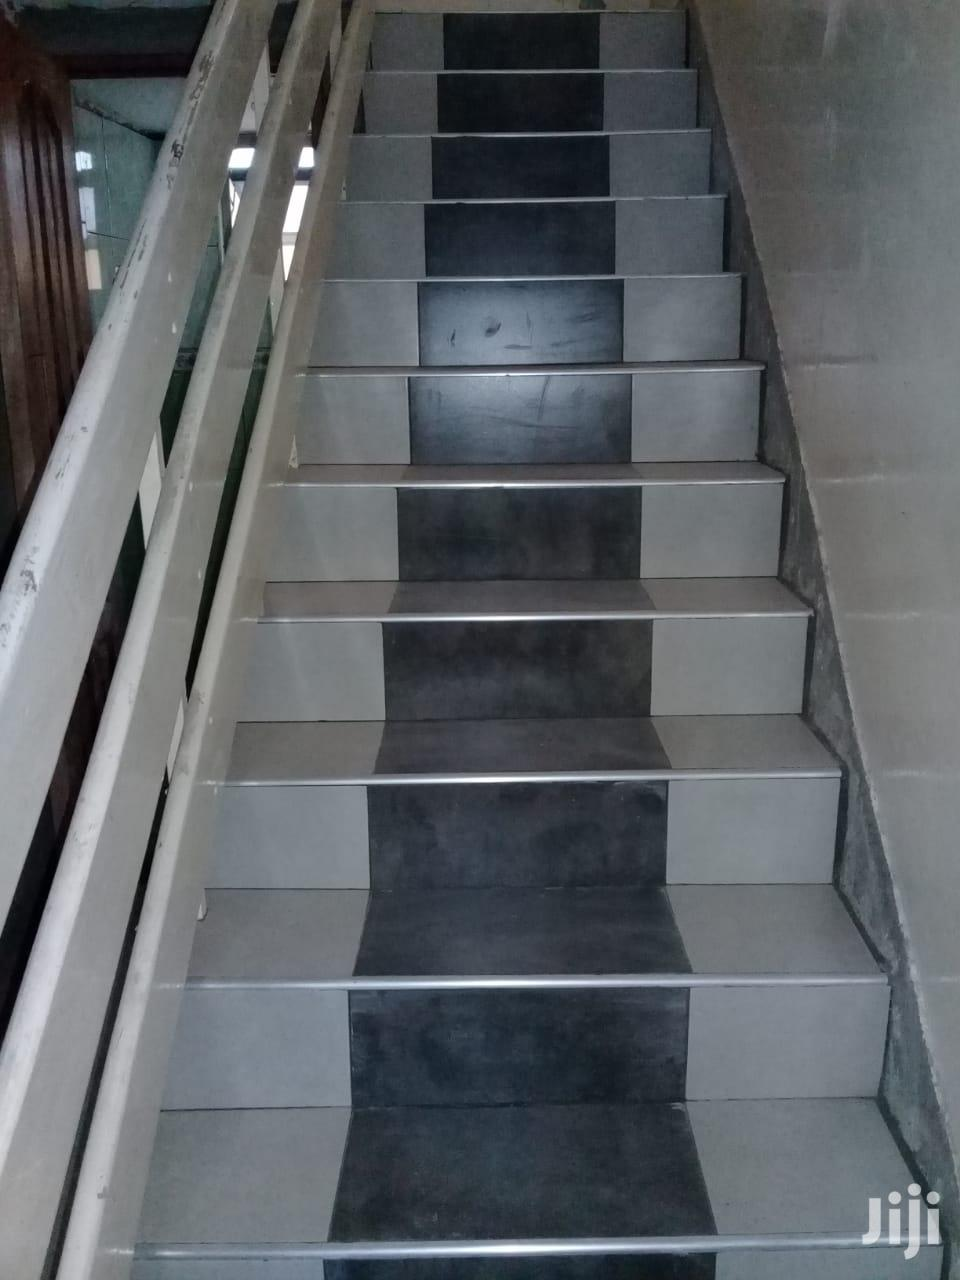 We Fix Tiles In Houses Both Residential Amd Offices | Building & Trades Services for sale in Bamburi, Mombasa, Kenya